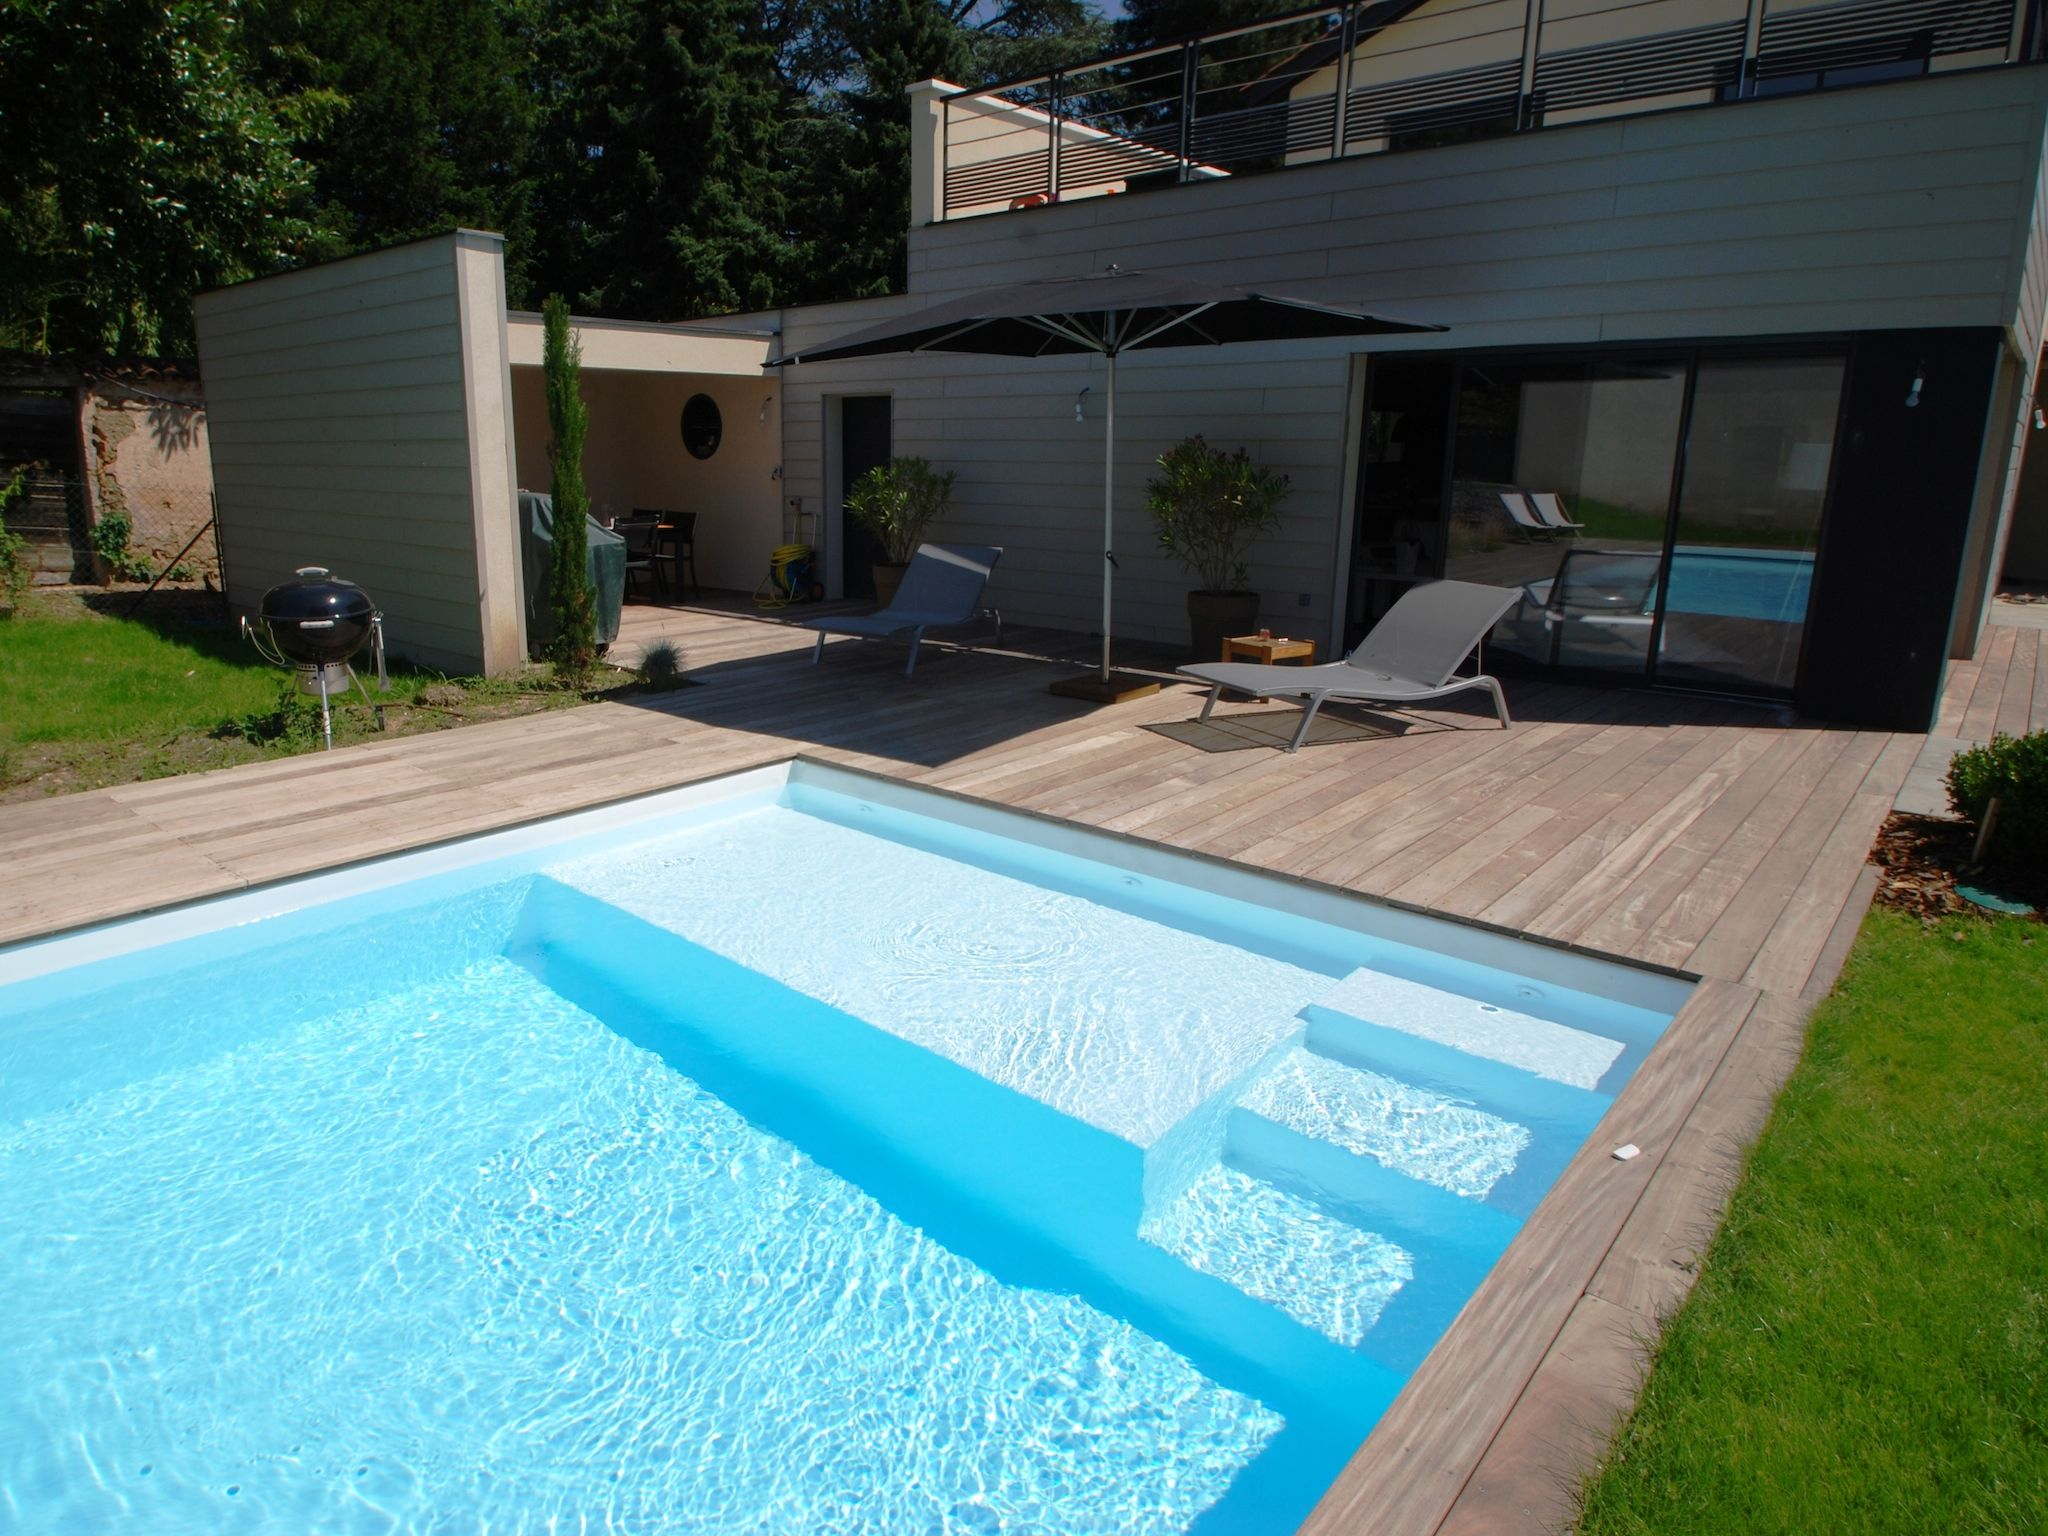 Votre escalier piscine pury piscines constrction piscine for Marche piscine